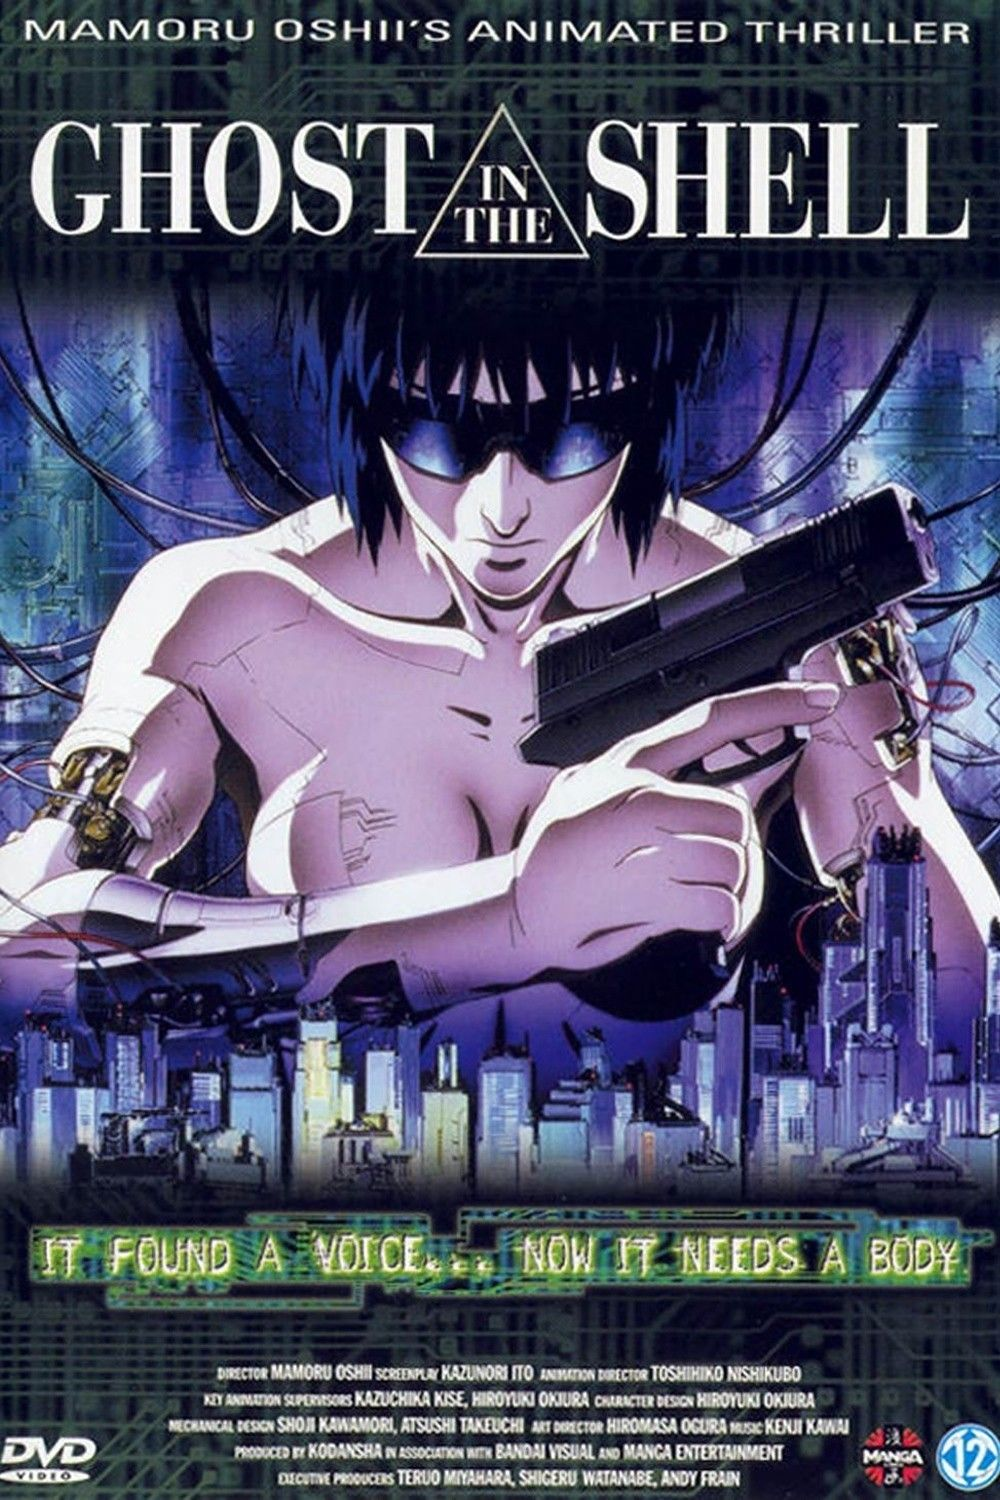 Ghost In The Shell 1995 Ghost In The Shell Animated Movies Animation Film